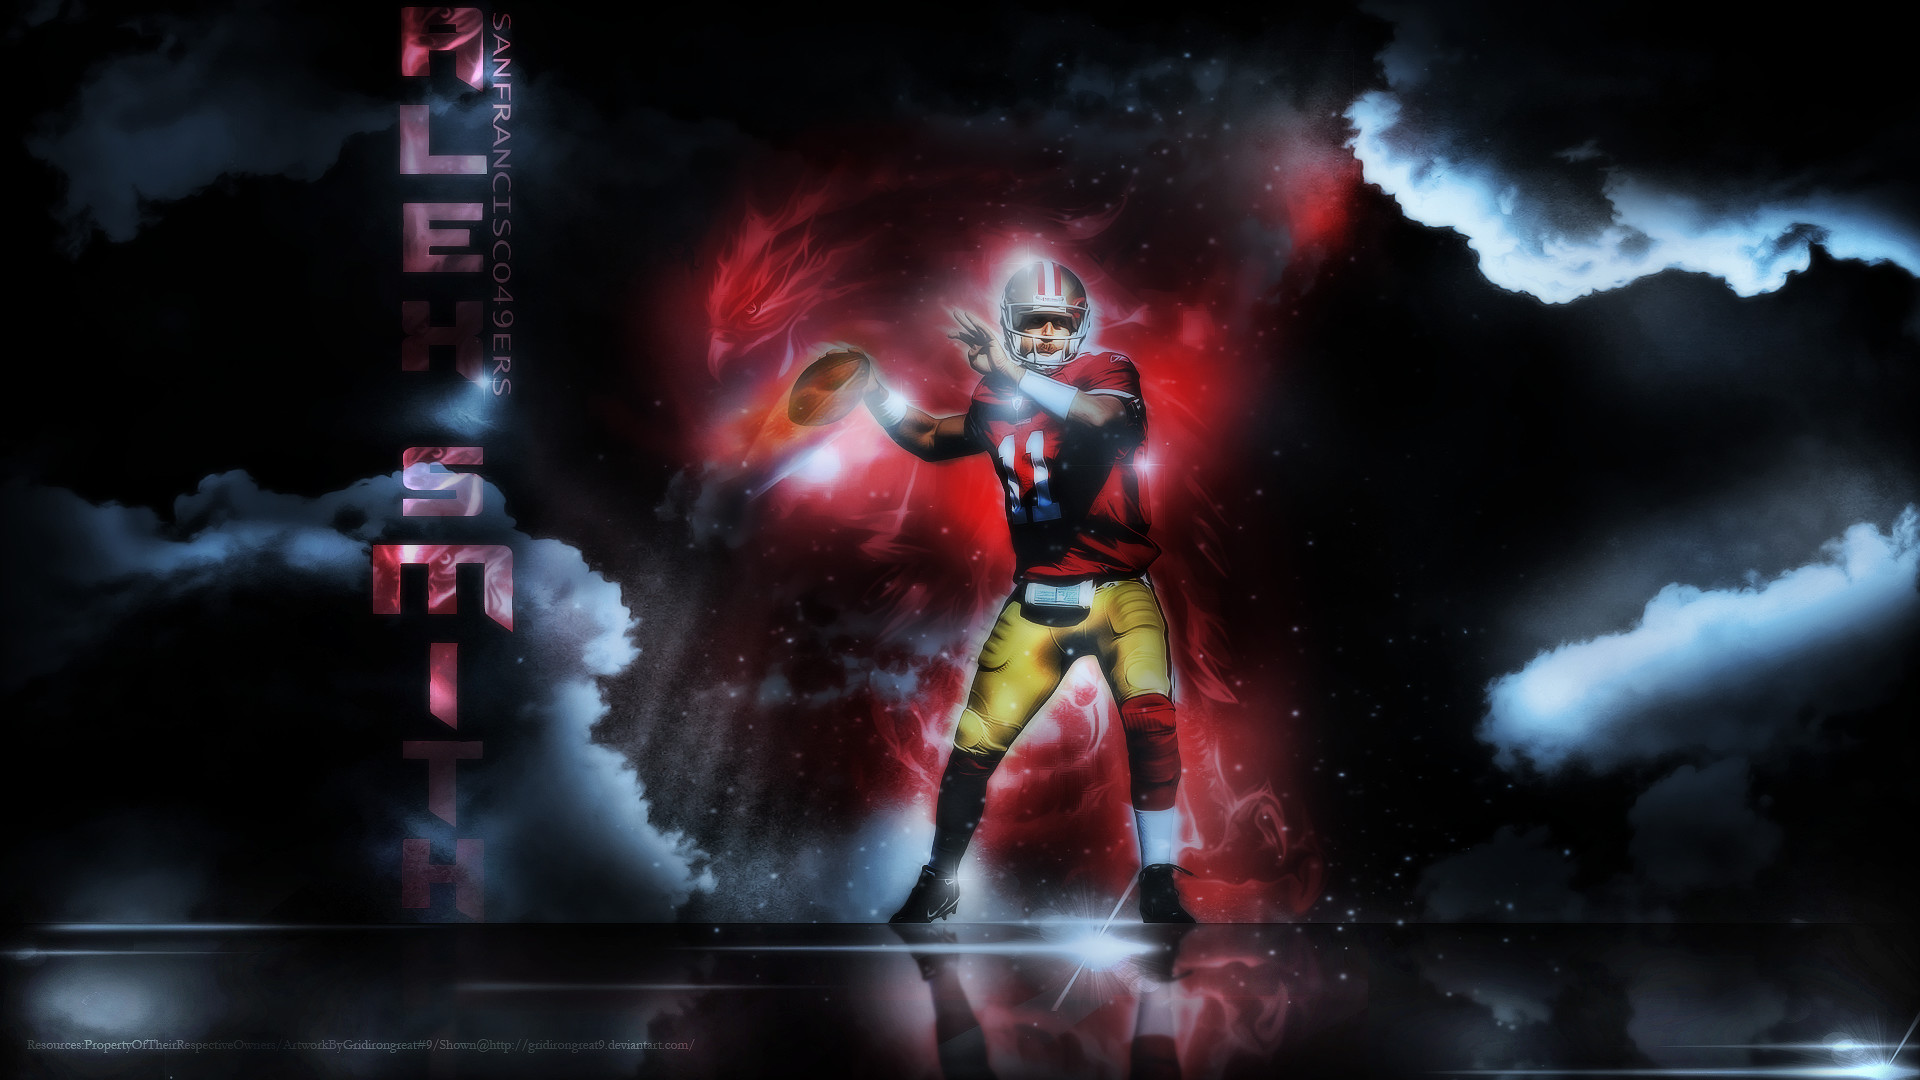 1920x1080 49ers Graphics - Photoshop - Wallpapers - Schedules | Page 3 | 49ers  Webzone Forum